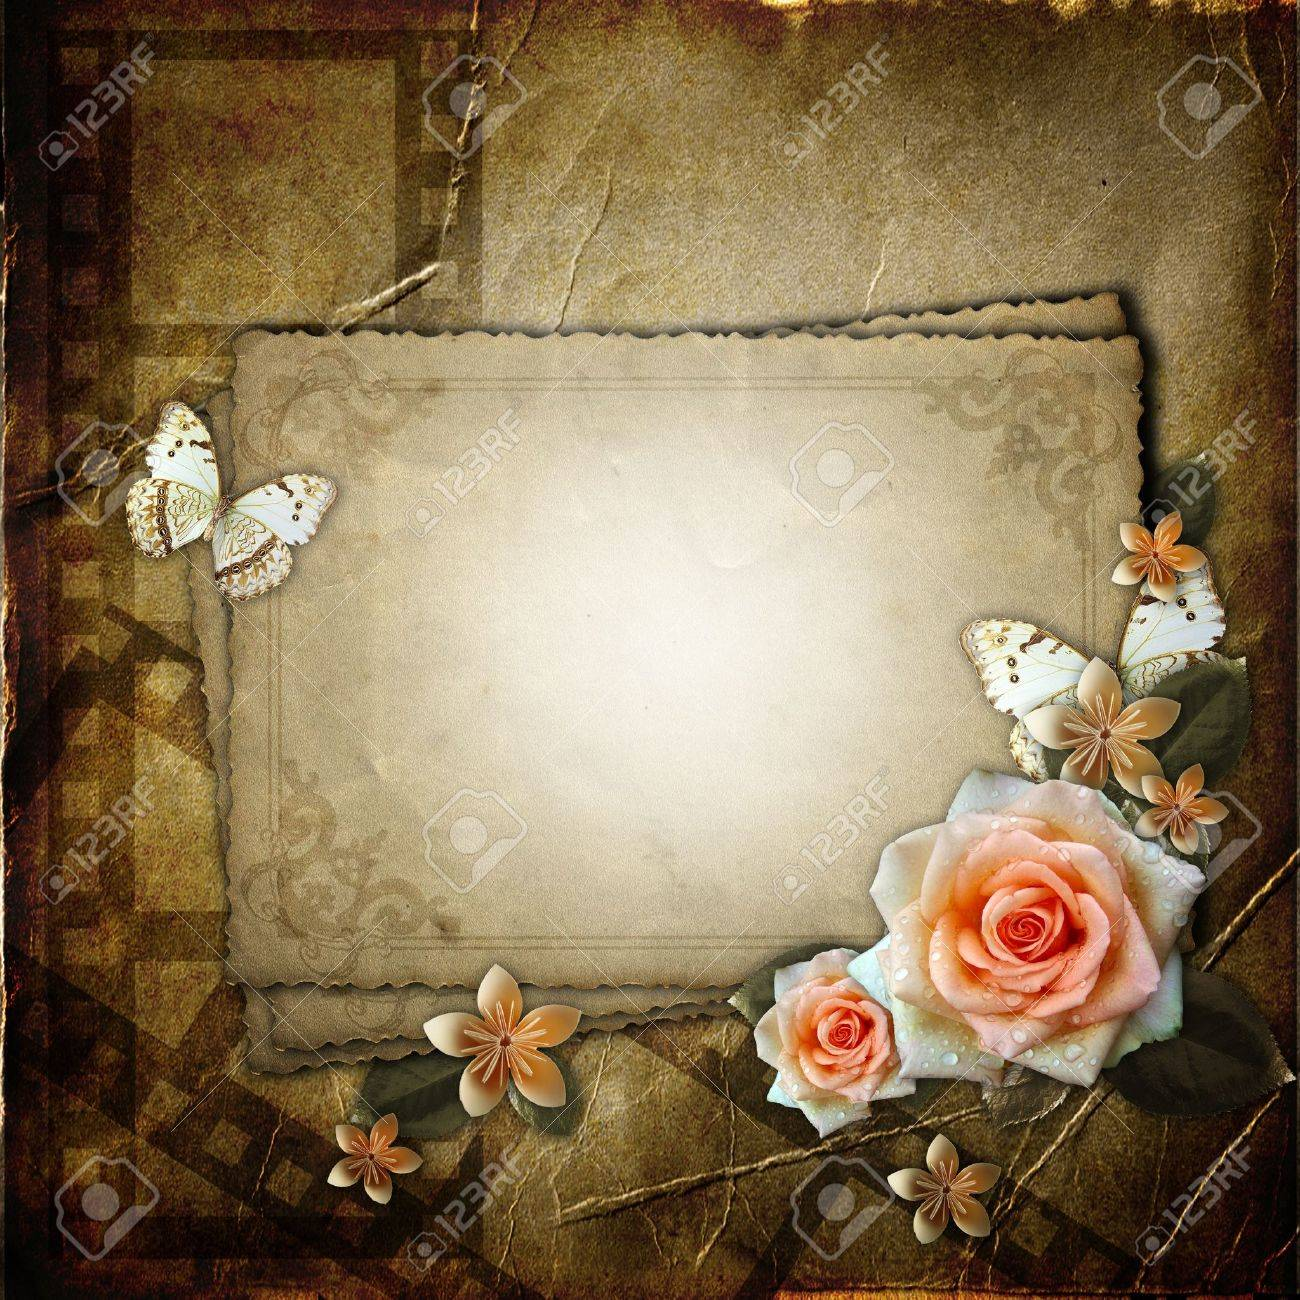 Vintage background with  paper  frame and flowers Stock Photo - 11826801